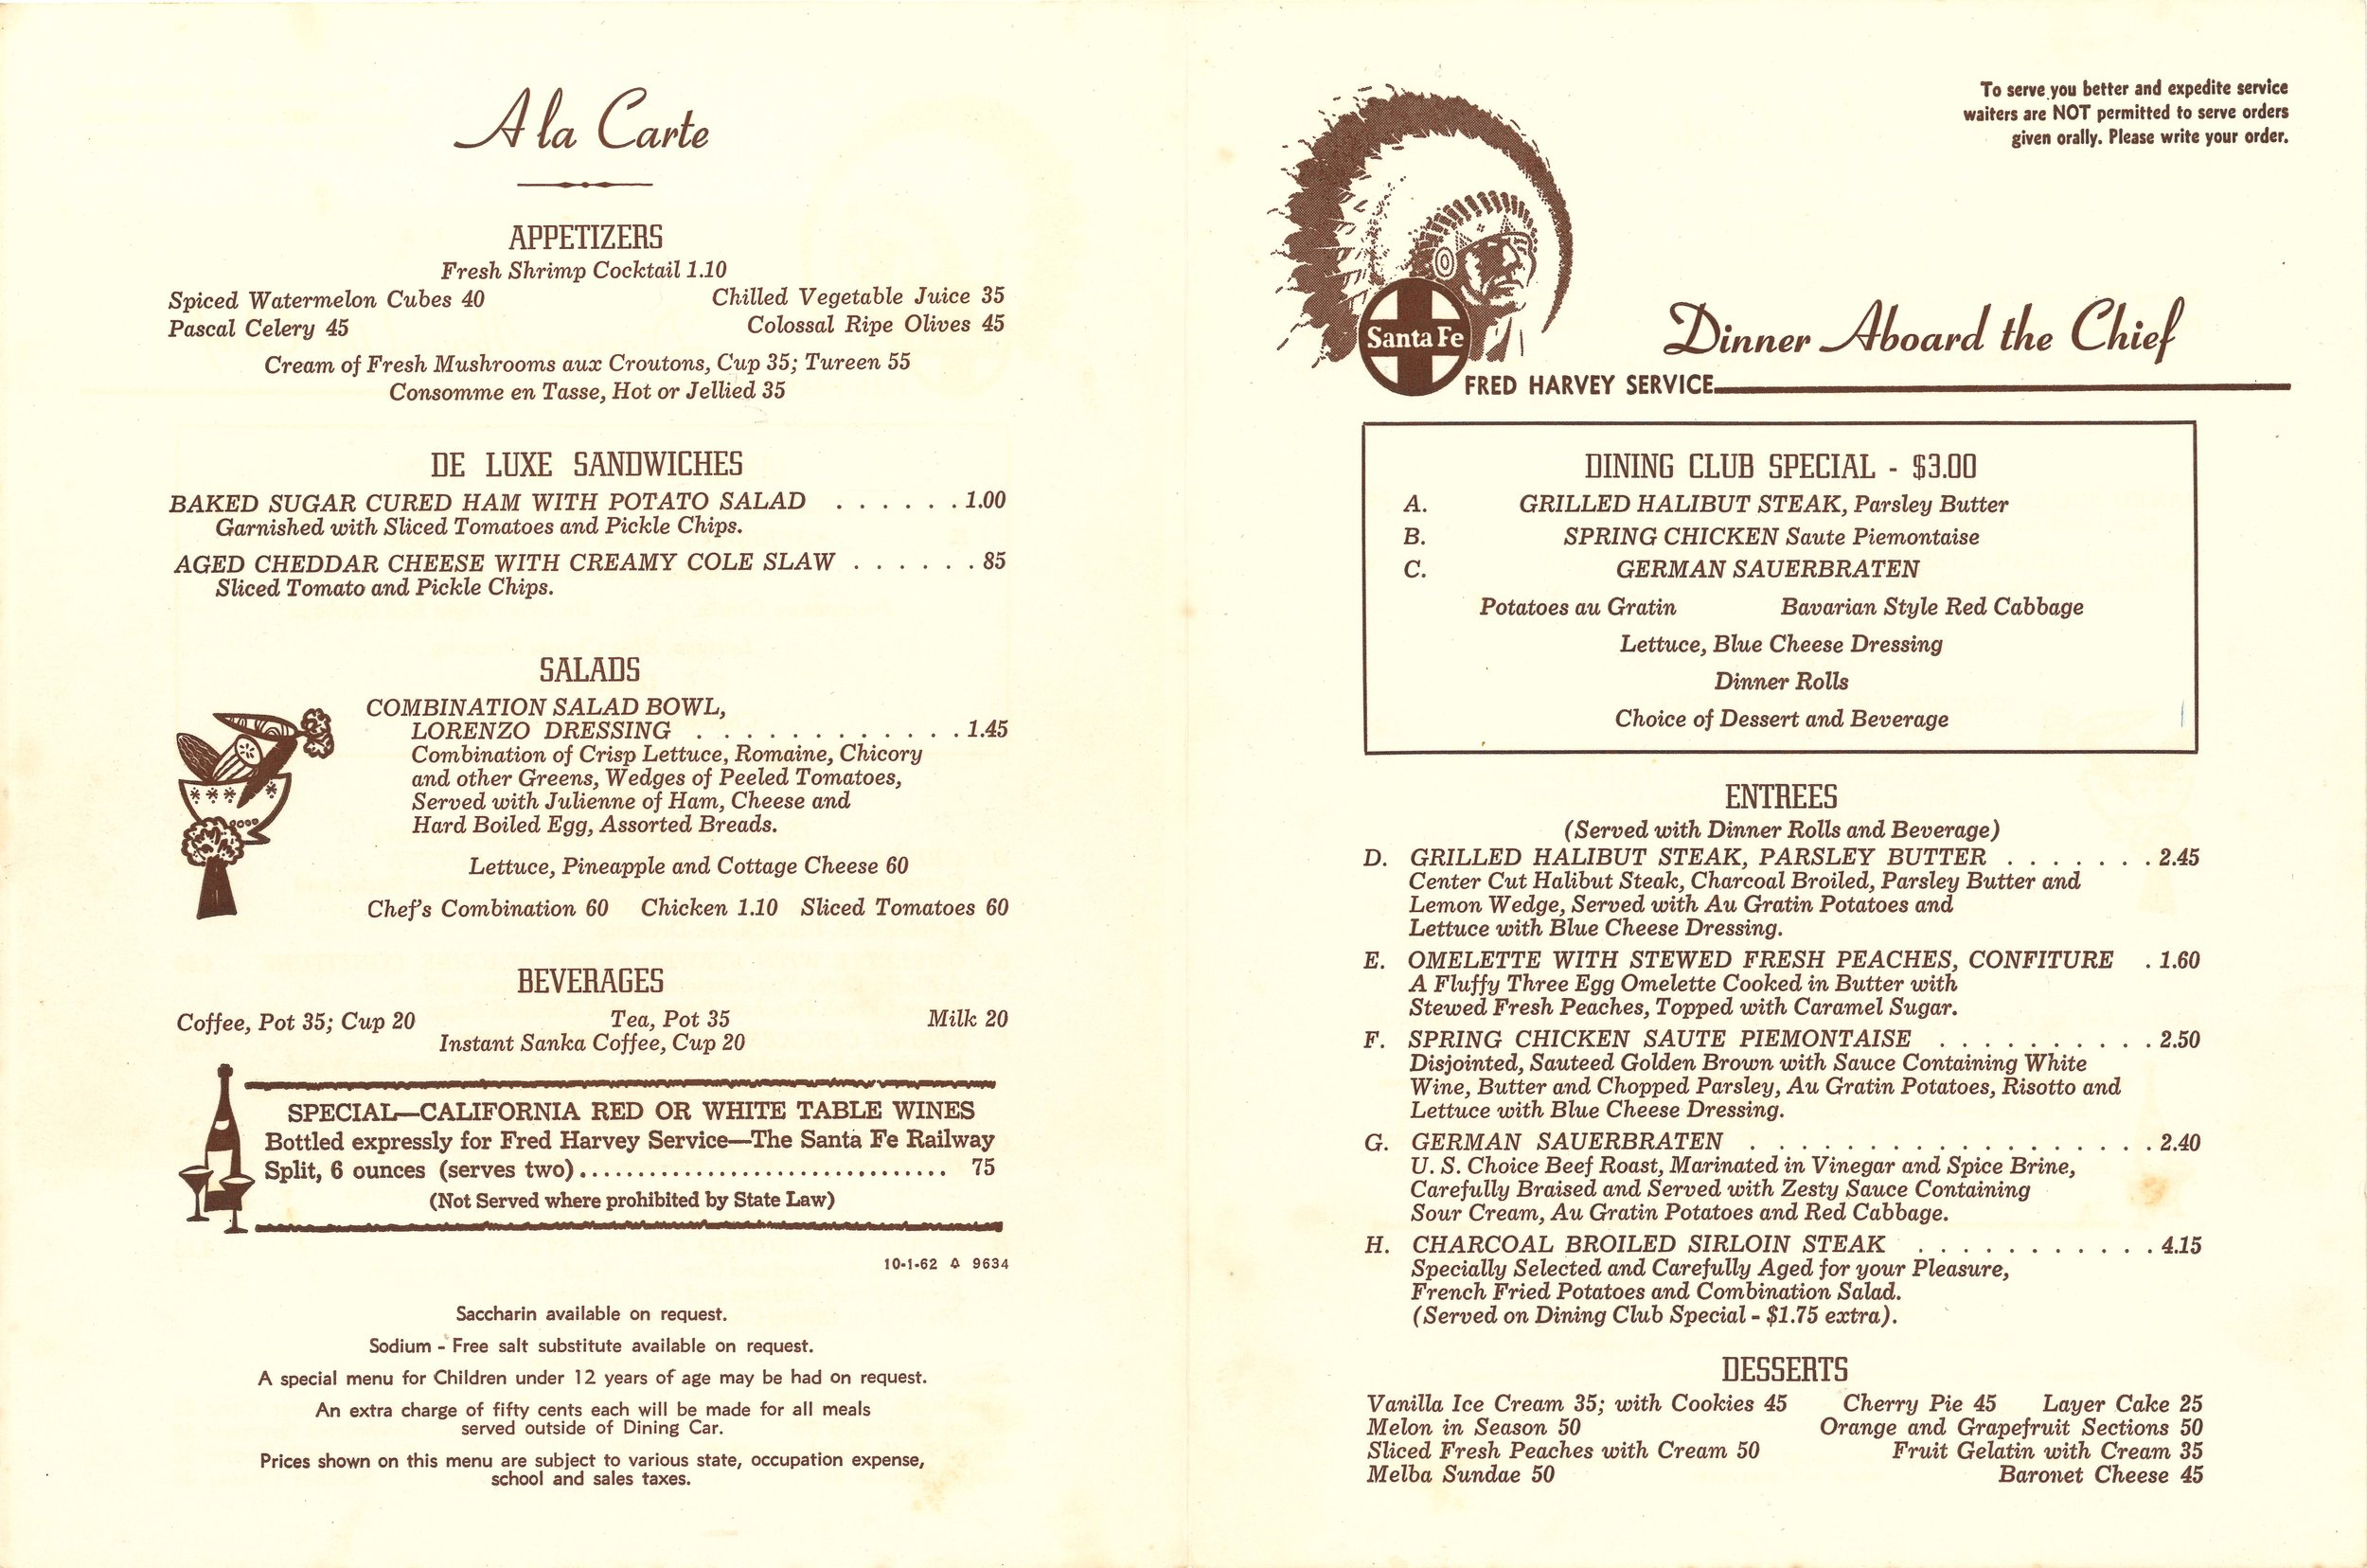 Santa Fe Ranchos De Taos Dinner Menu 2_Cropped.jpg